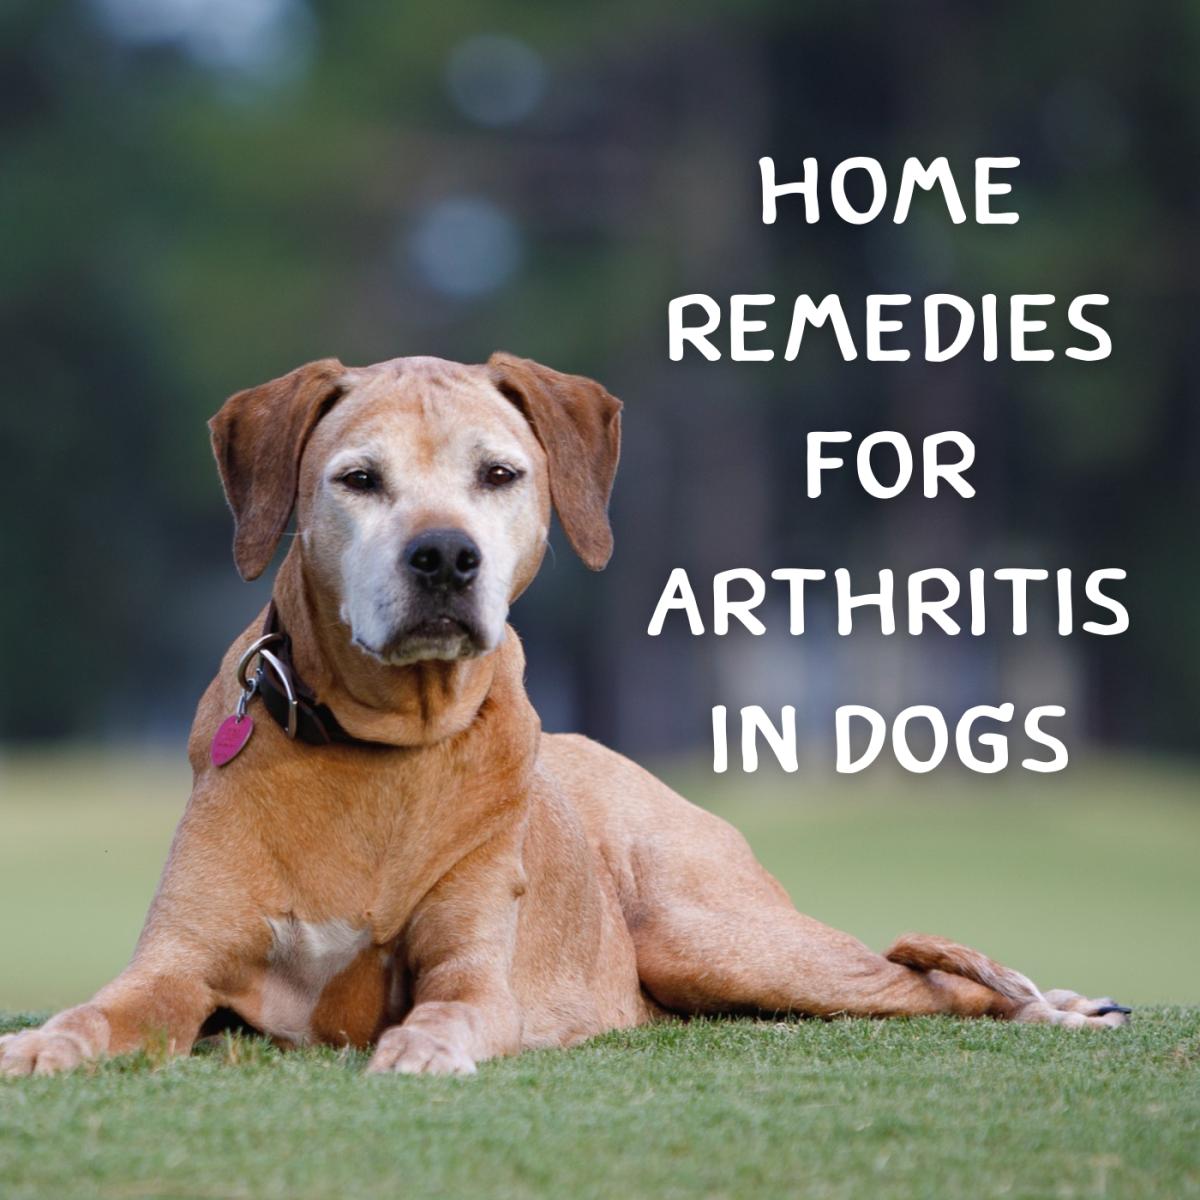 Arthritis in Dogs: Natural Home Remedies for Joint Pain